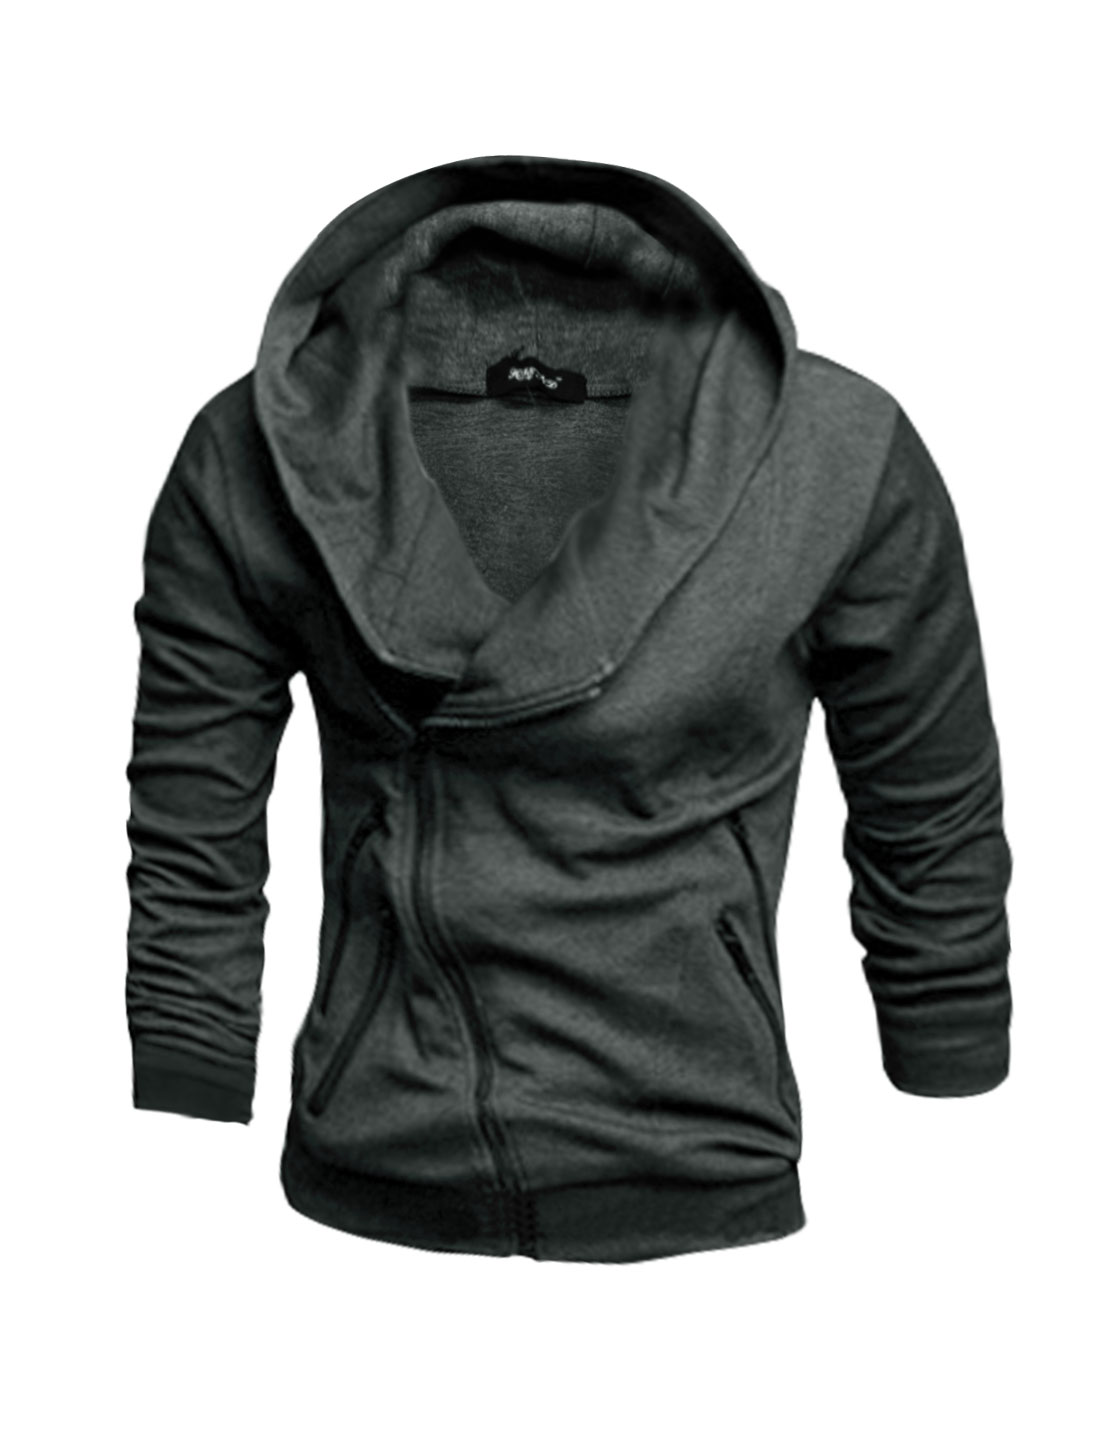 Men Long Sleeves Zipper Closure Slim Fit Hooded Jacket Gray M